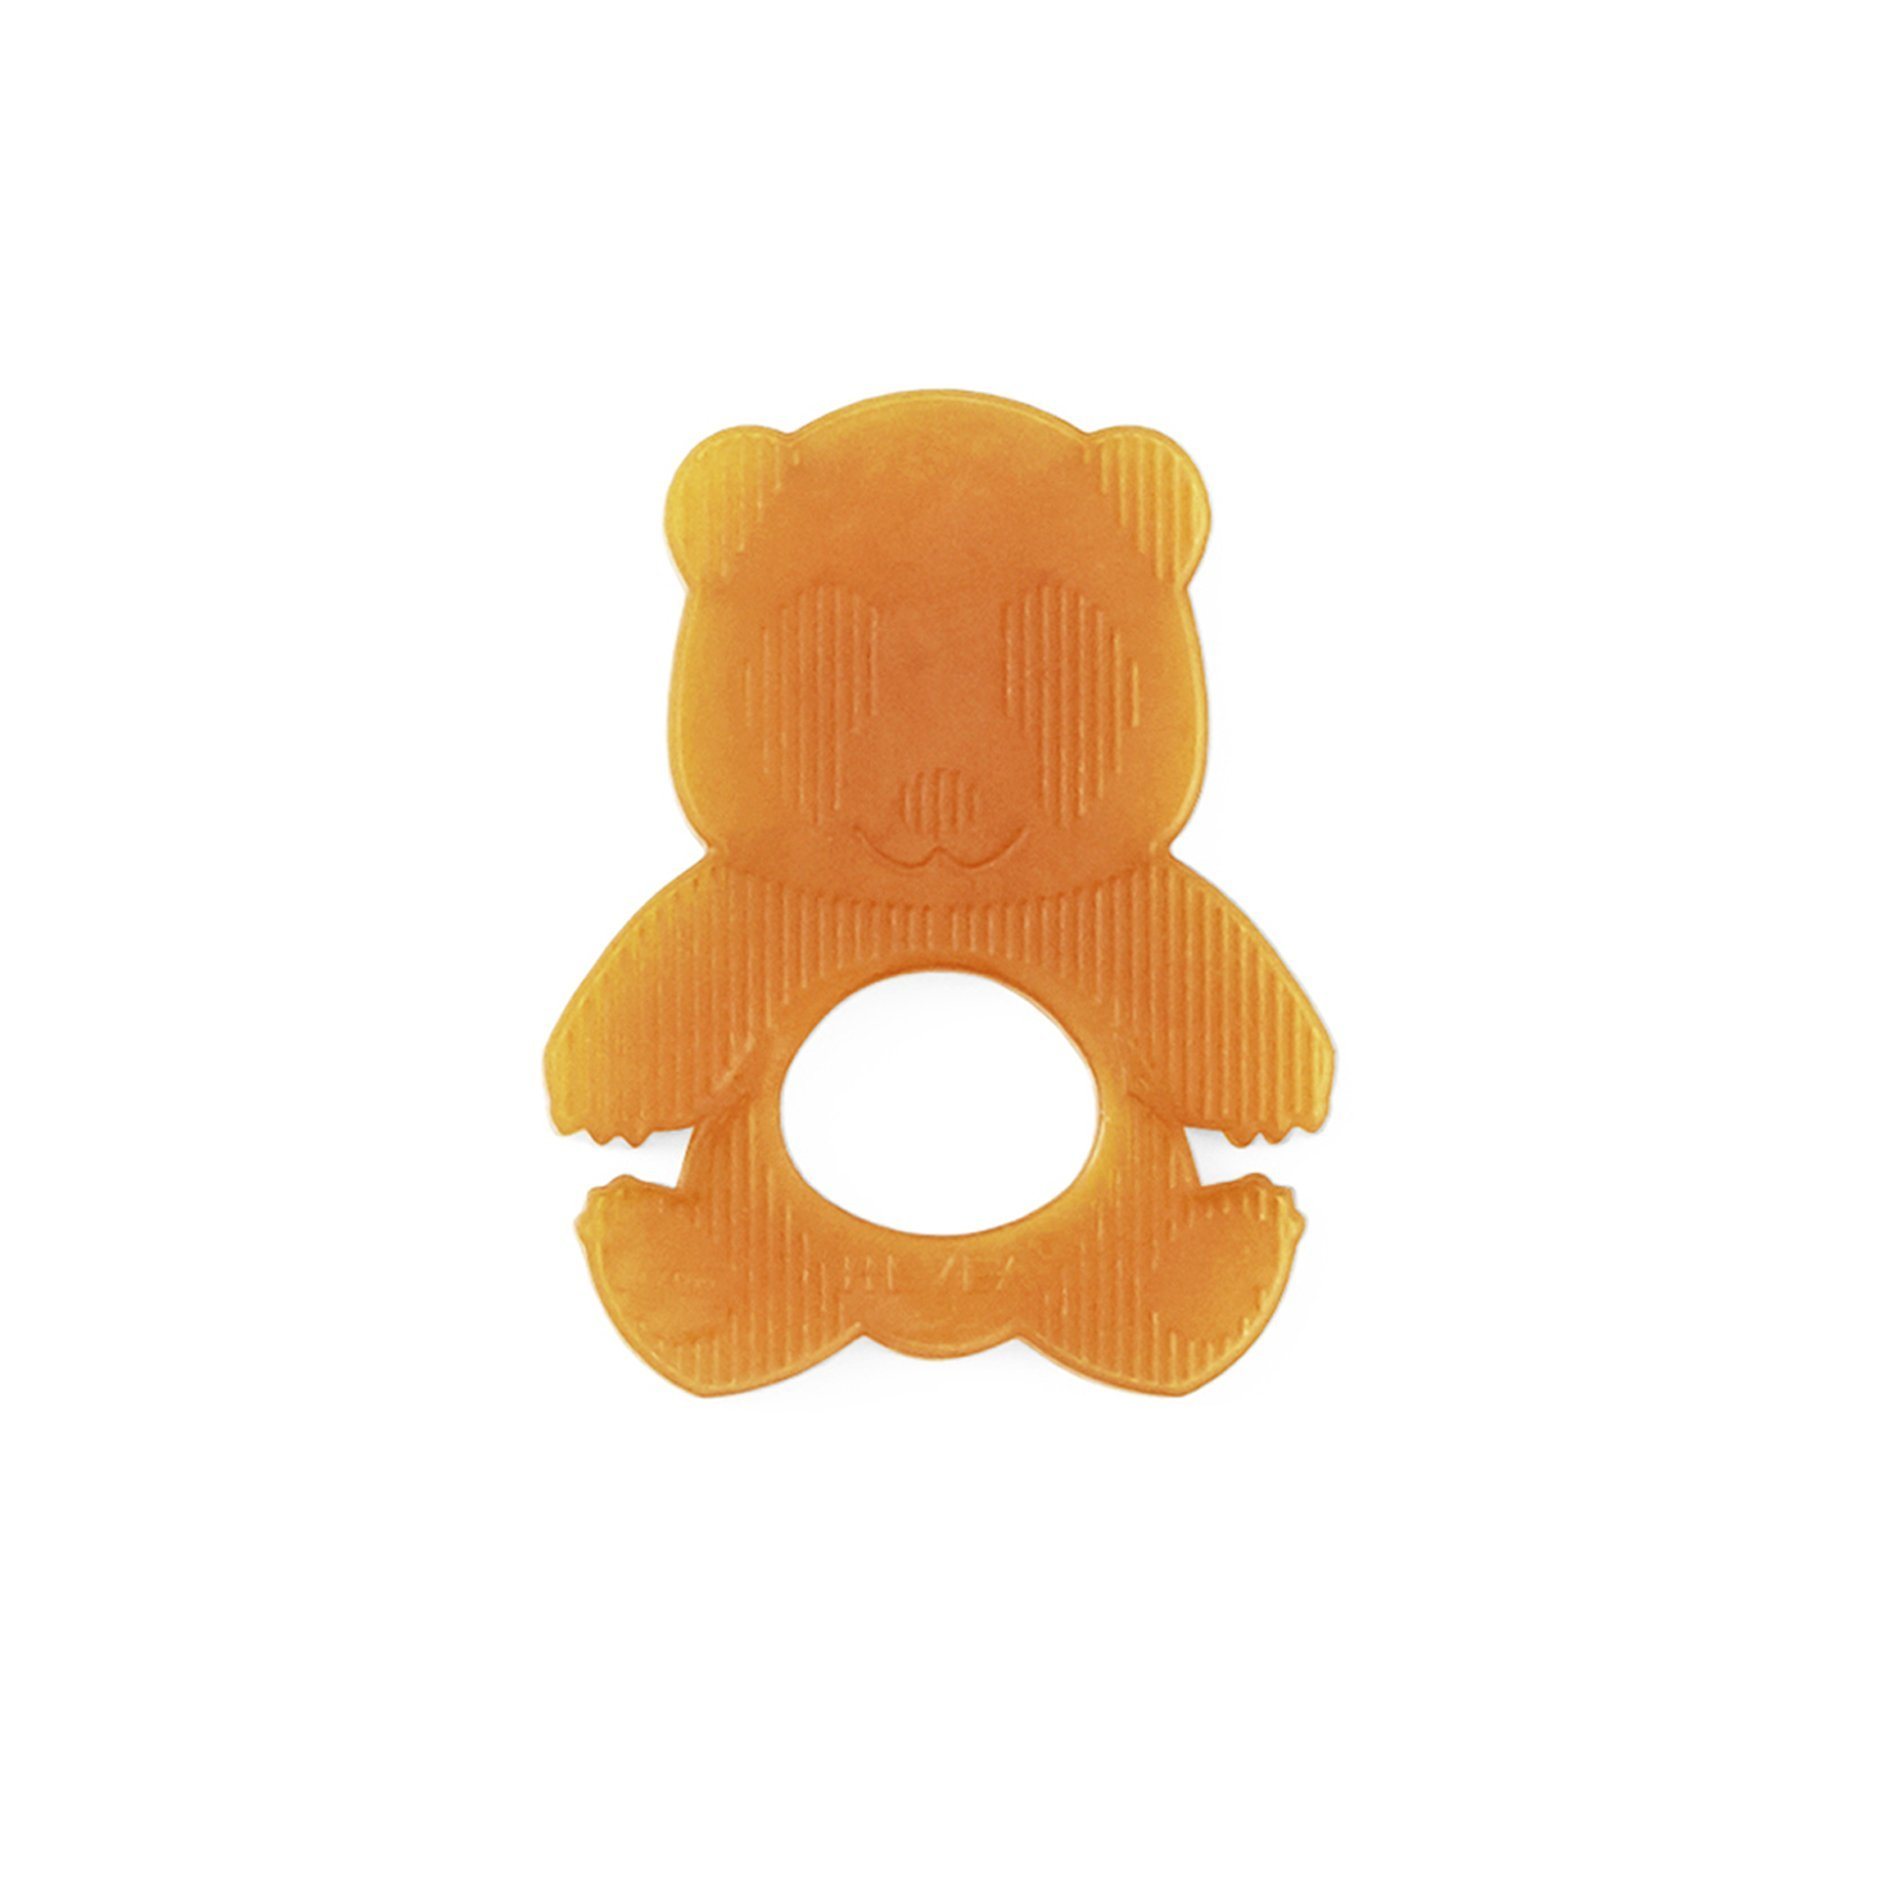 Re-play Teether Keys Fda Approved Bpa Free Recycled Plastics Baby Teething Consumers First Baby